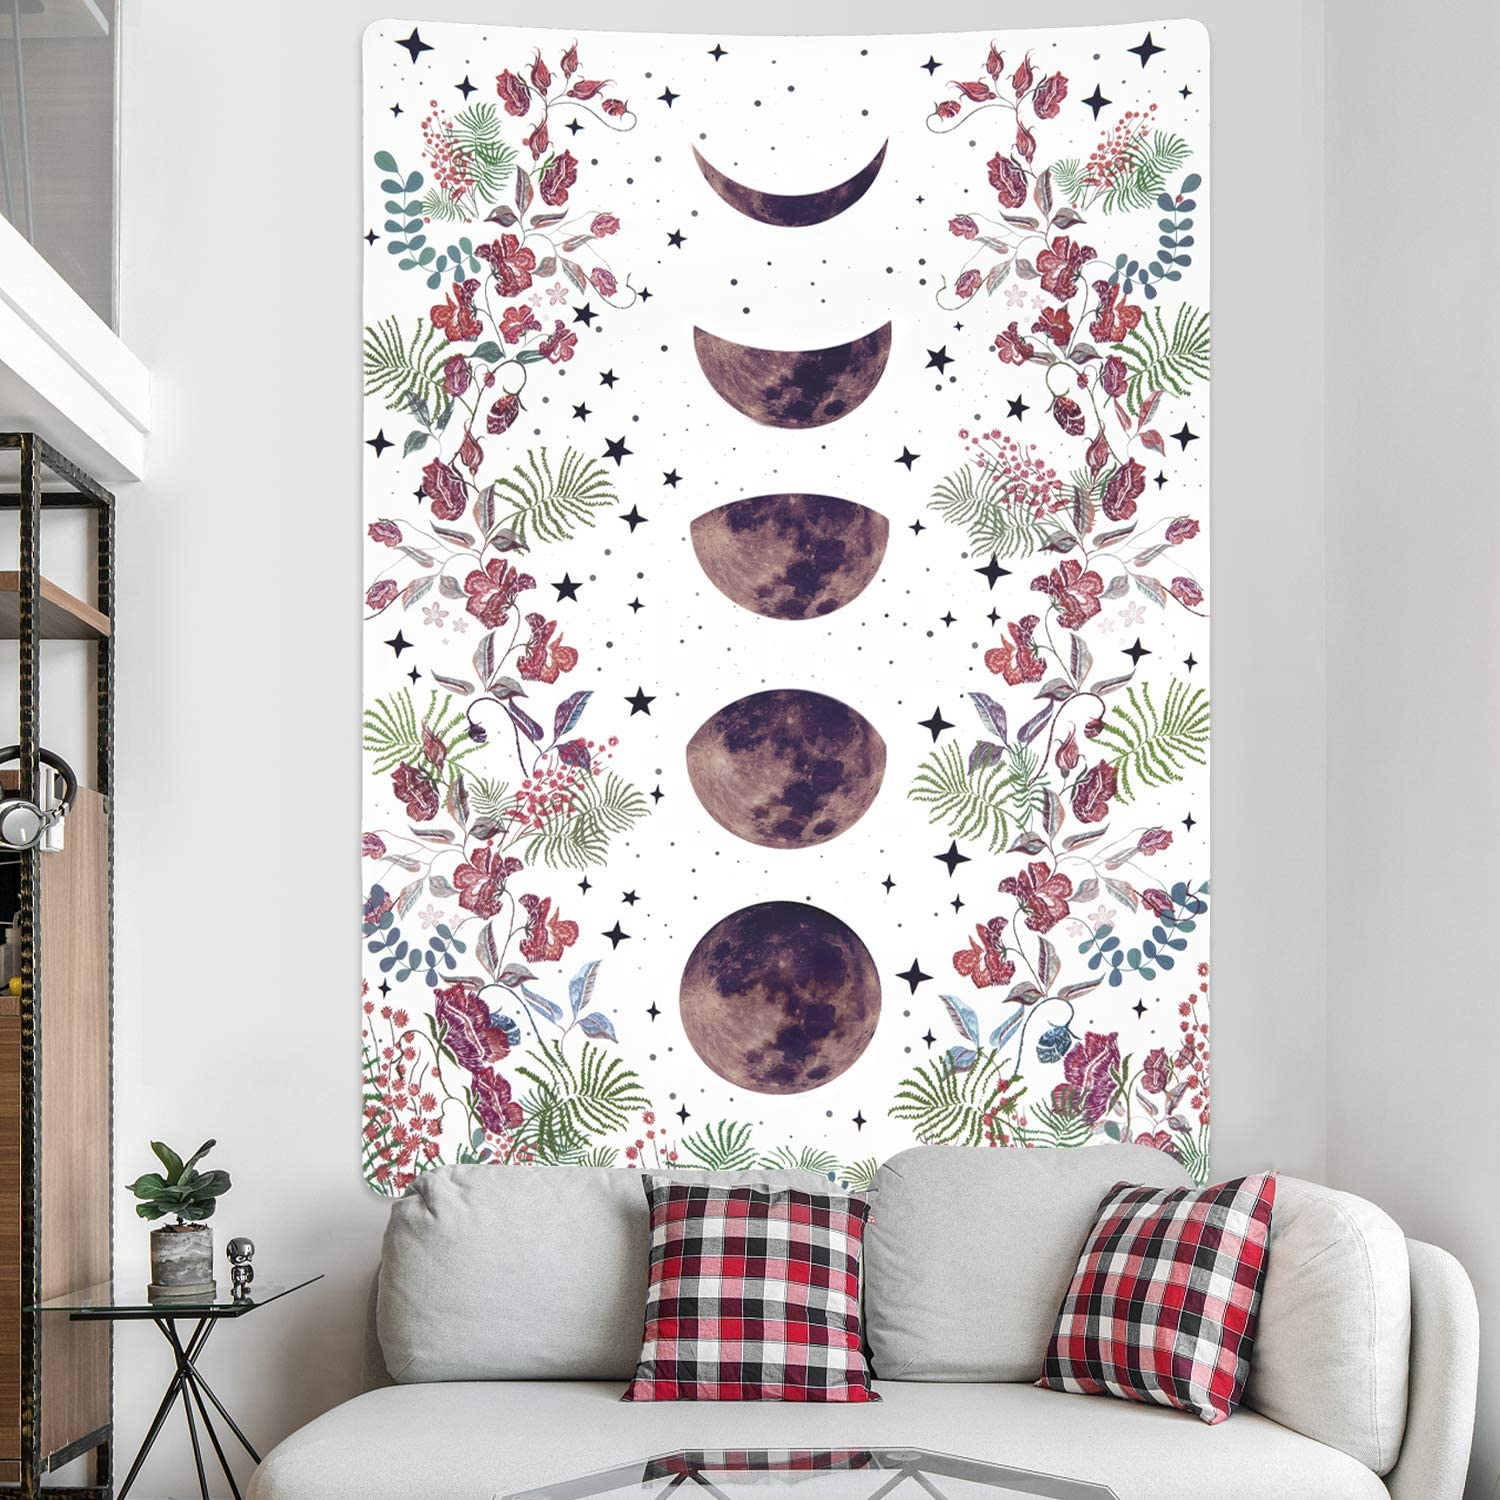 Moonlit Garden Tapestry Moon Max 74% OFF Flowers Phase Tapest Max 71% OFF Vines